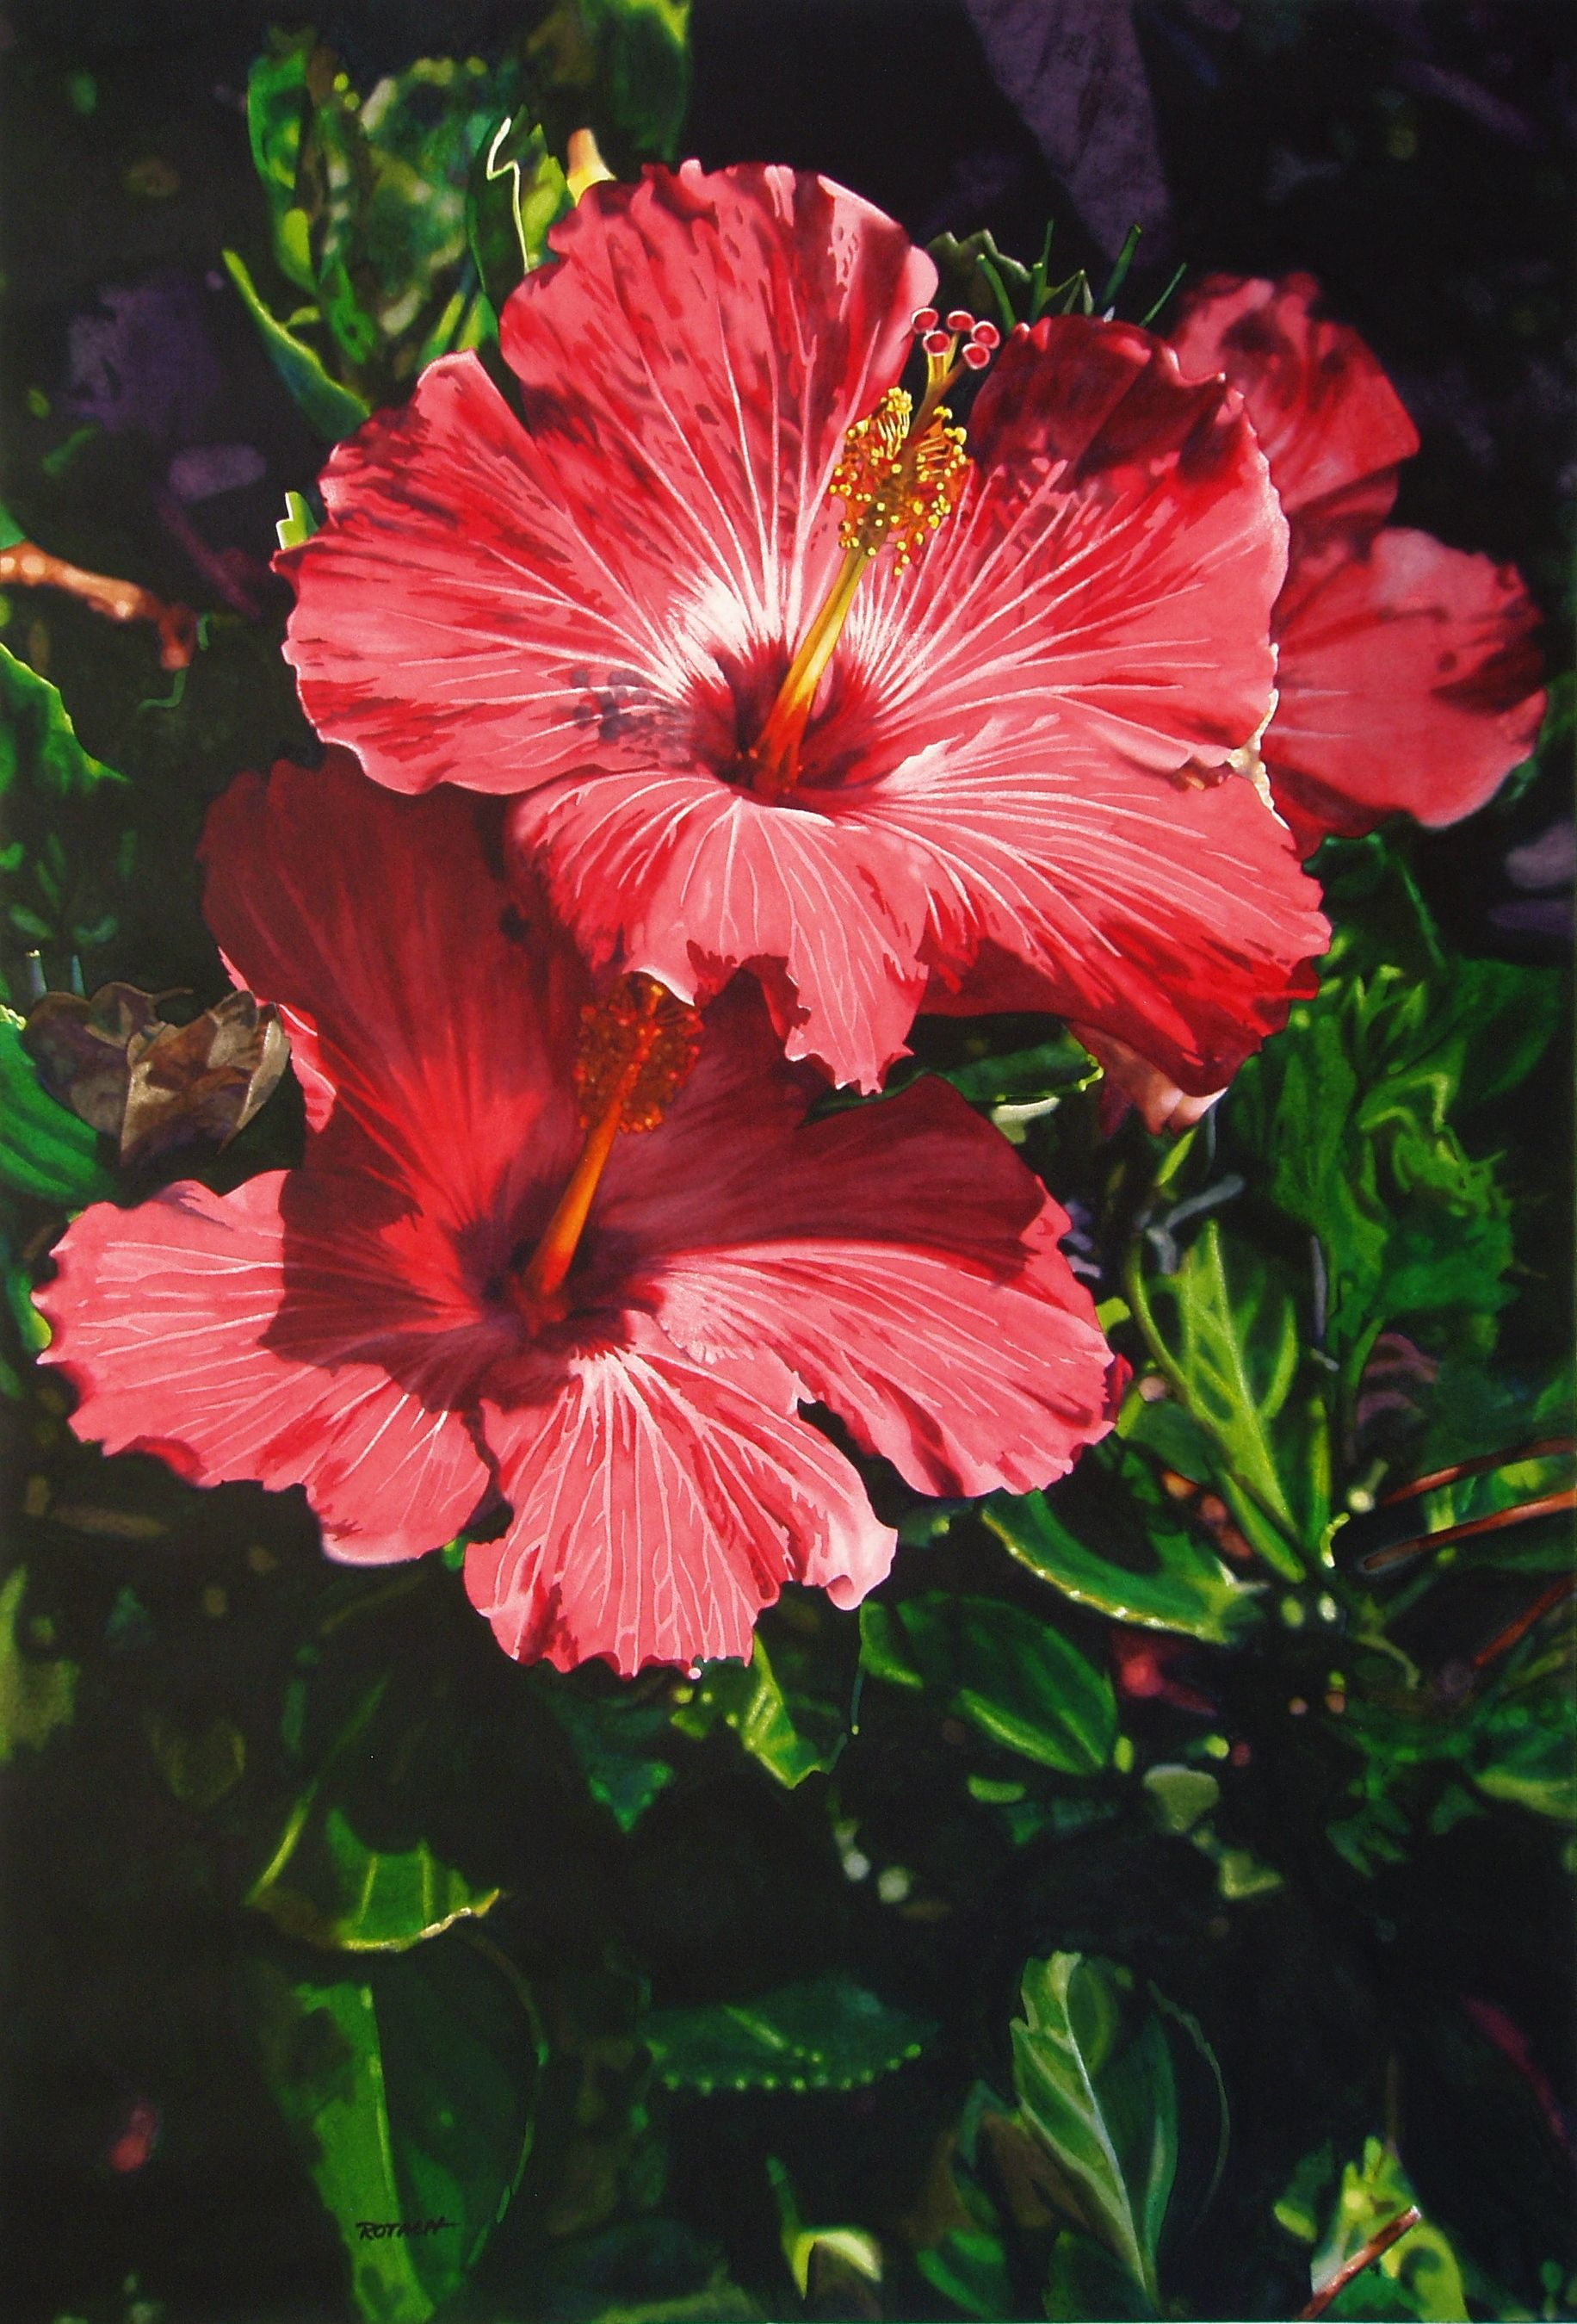 Floral painting by Marlin Rotach Floral painting, Floral